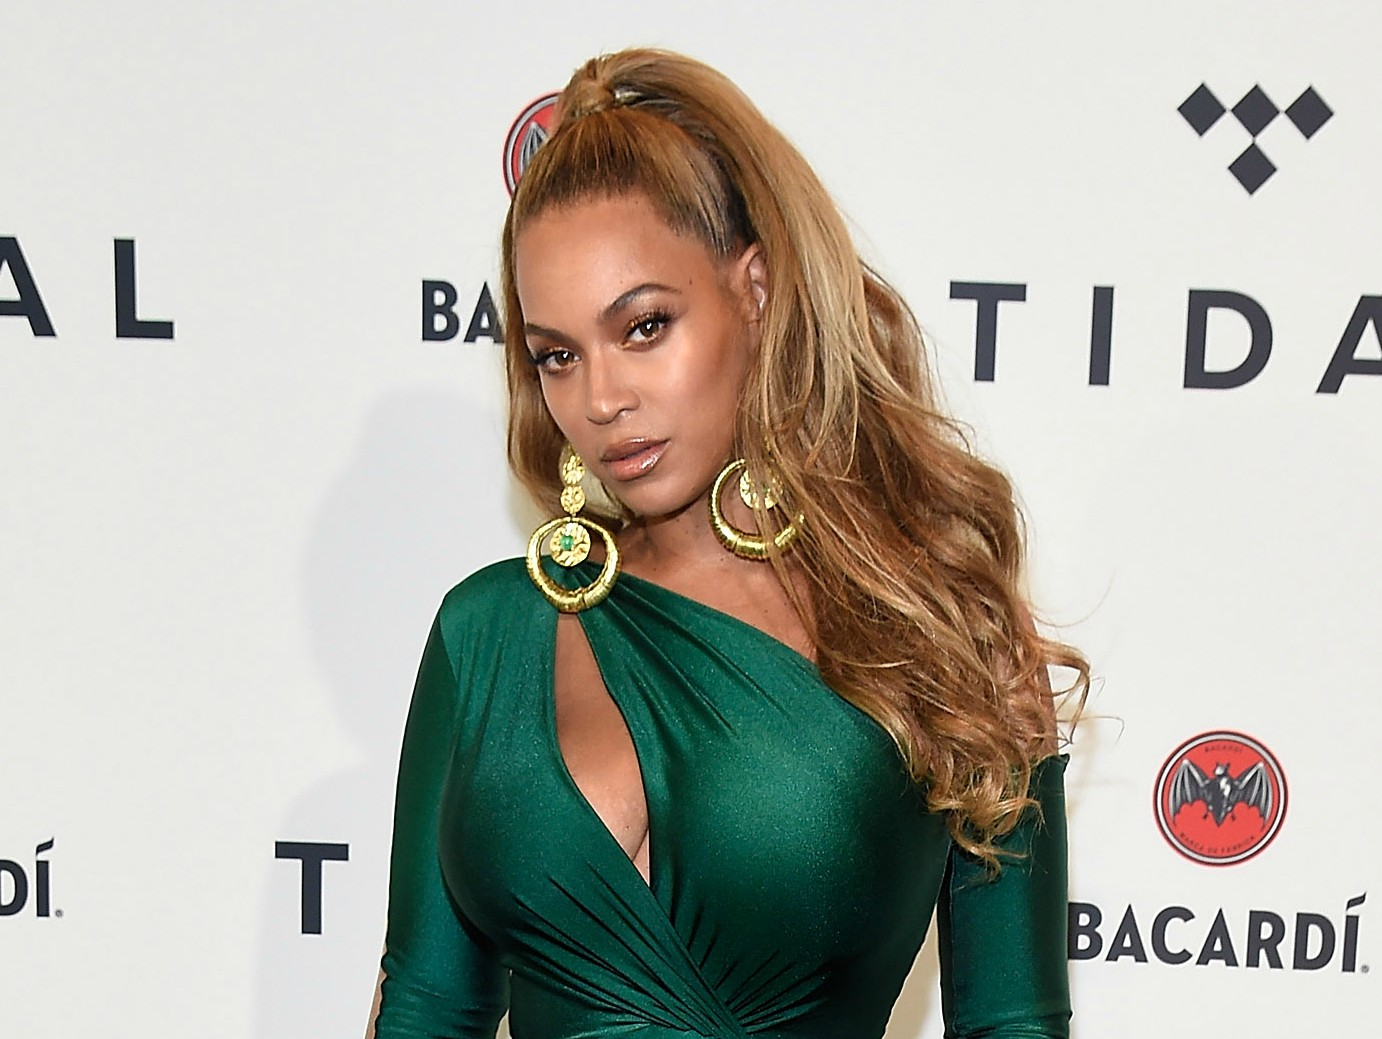 Beyonce throws shade at Kim Kardashian in new song